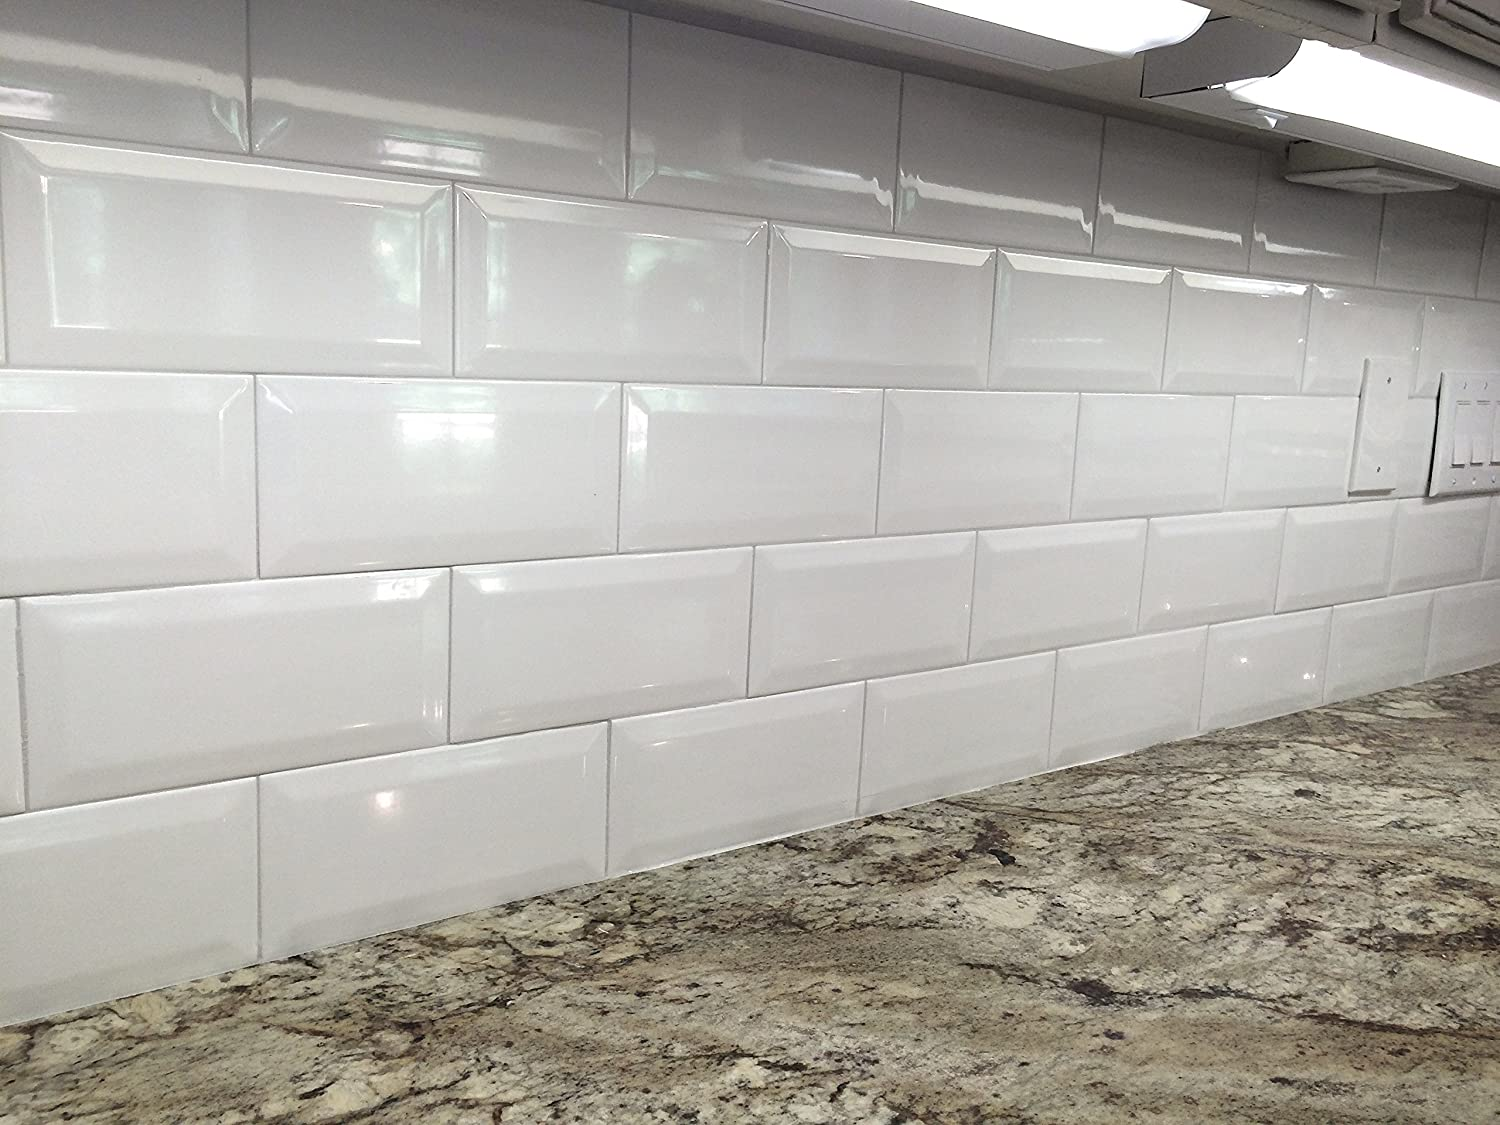 Generous 12 Ceramic Tile Big 18 Inch Ceramic Tile Regular 1X1 Ceramic Tile 200X200 Floor Tiles Youthful 2X2 Ceiling Tiles Lowes Green3 X 6 White Subway Tile 4X8 Soft White Wide Beveled Subway Ceramic Tile Backsplashes Walls ..